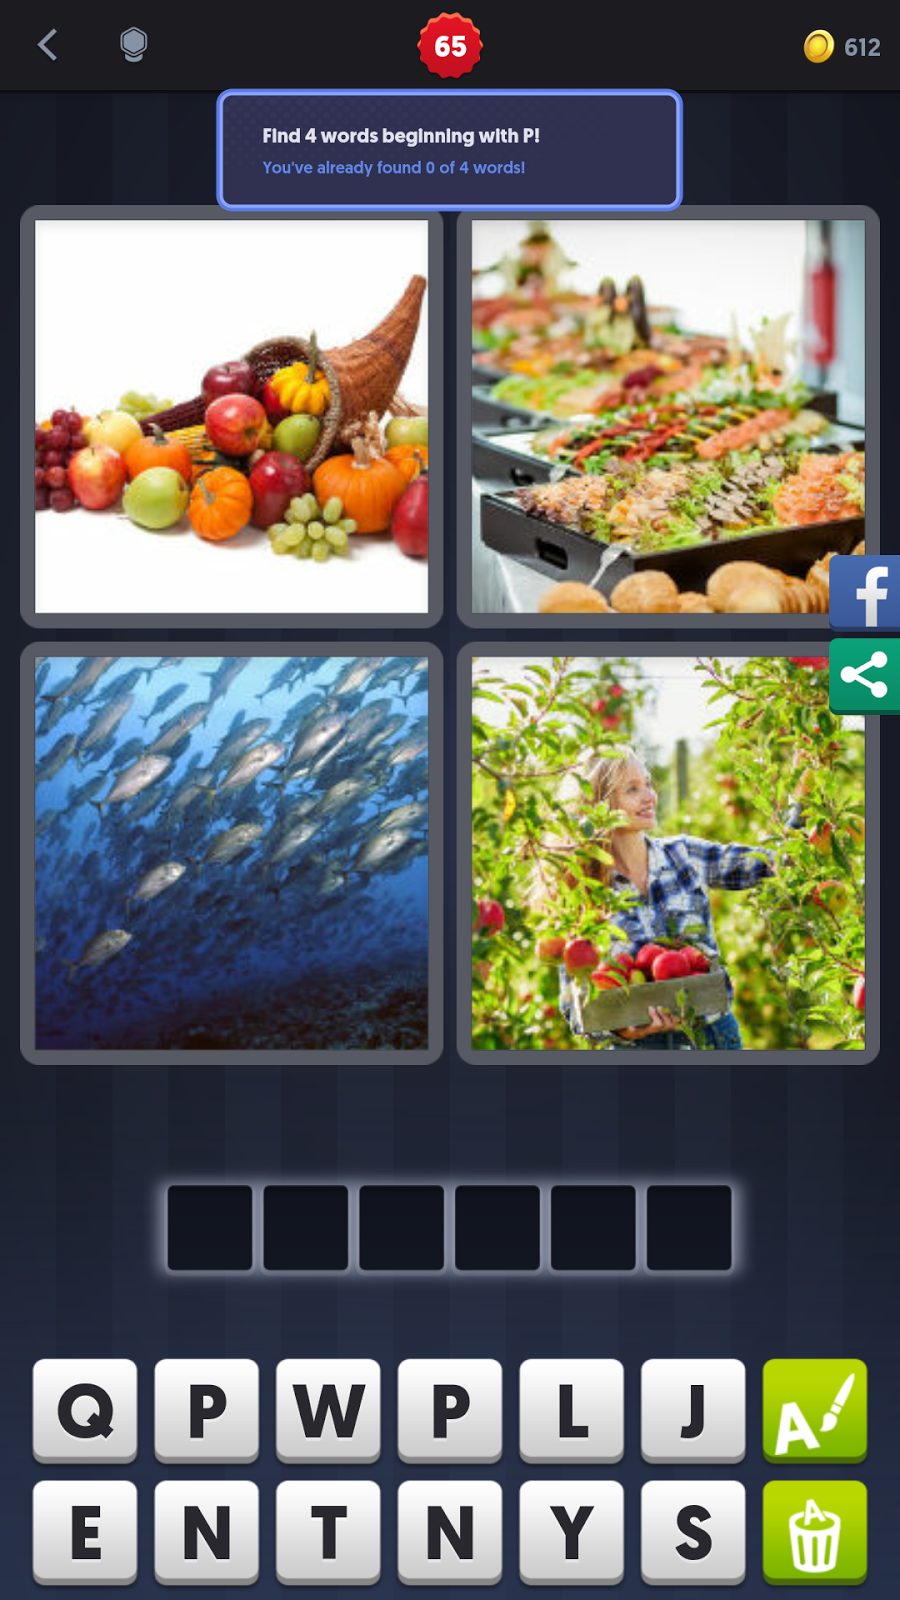 4 Pics 1 Word Answers Solutions Level 65 Plenty